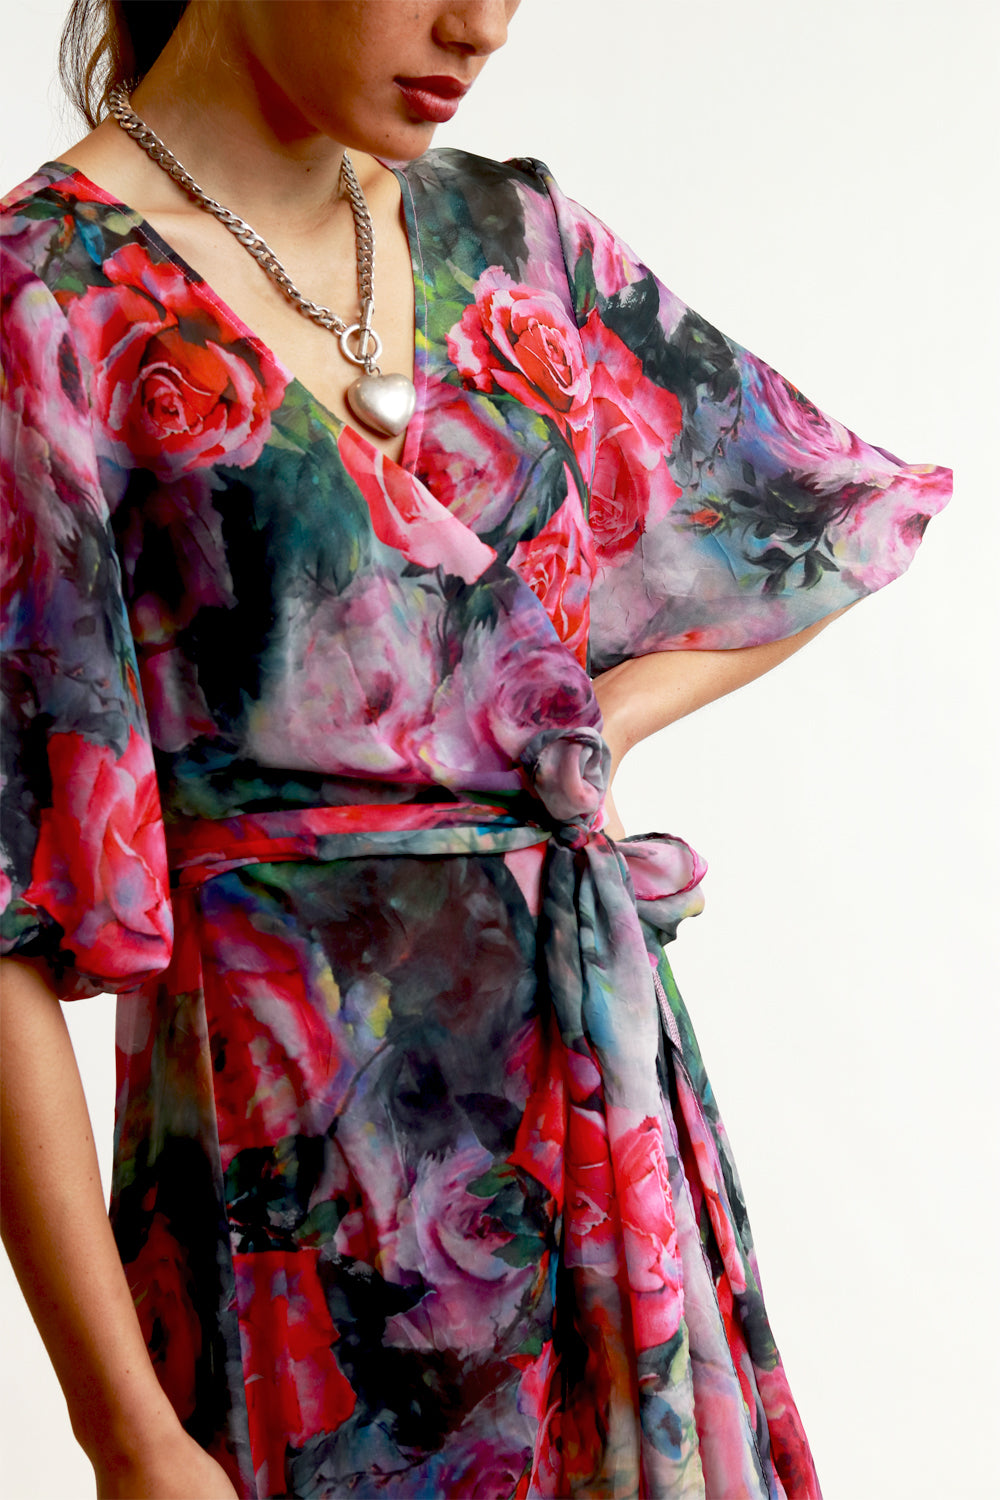 Annah Stretton pink floral wrap dress with puff sleeve